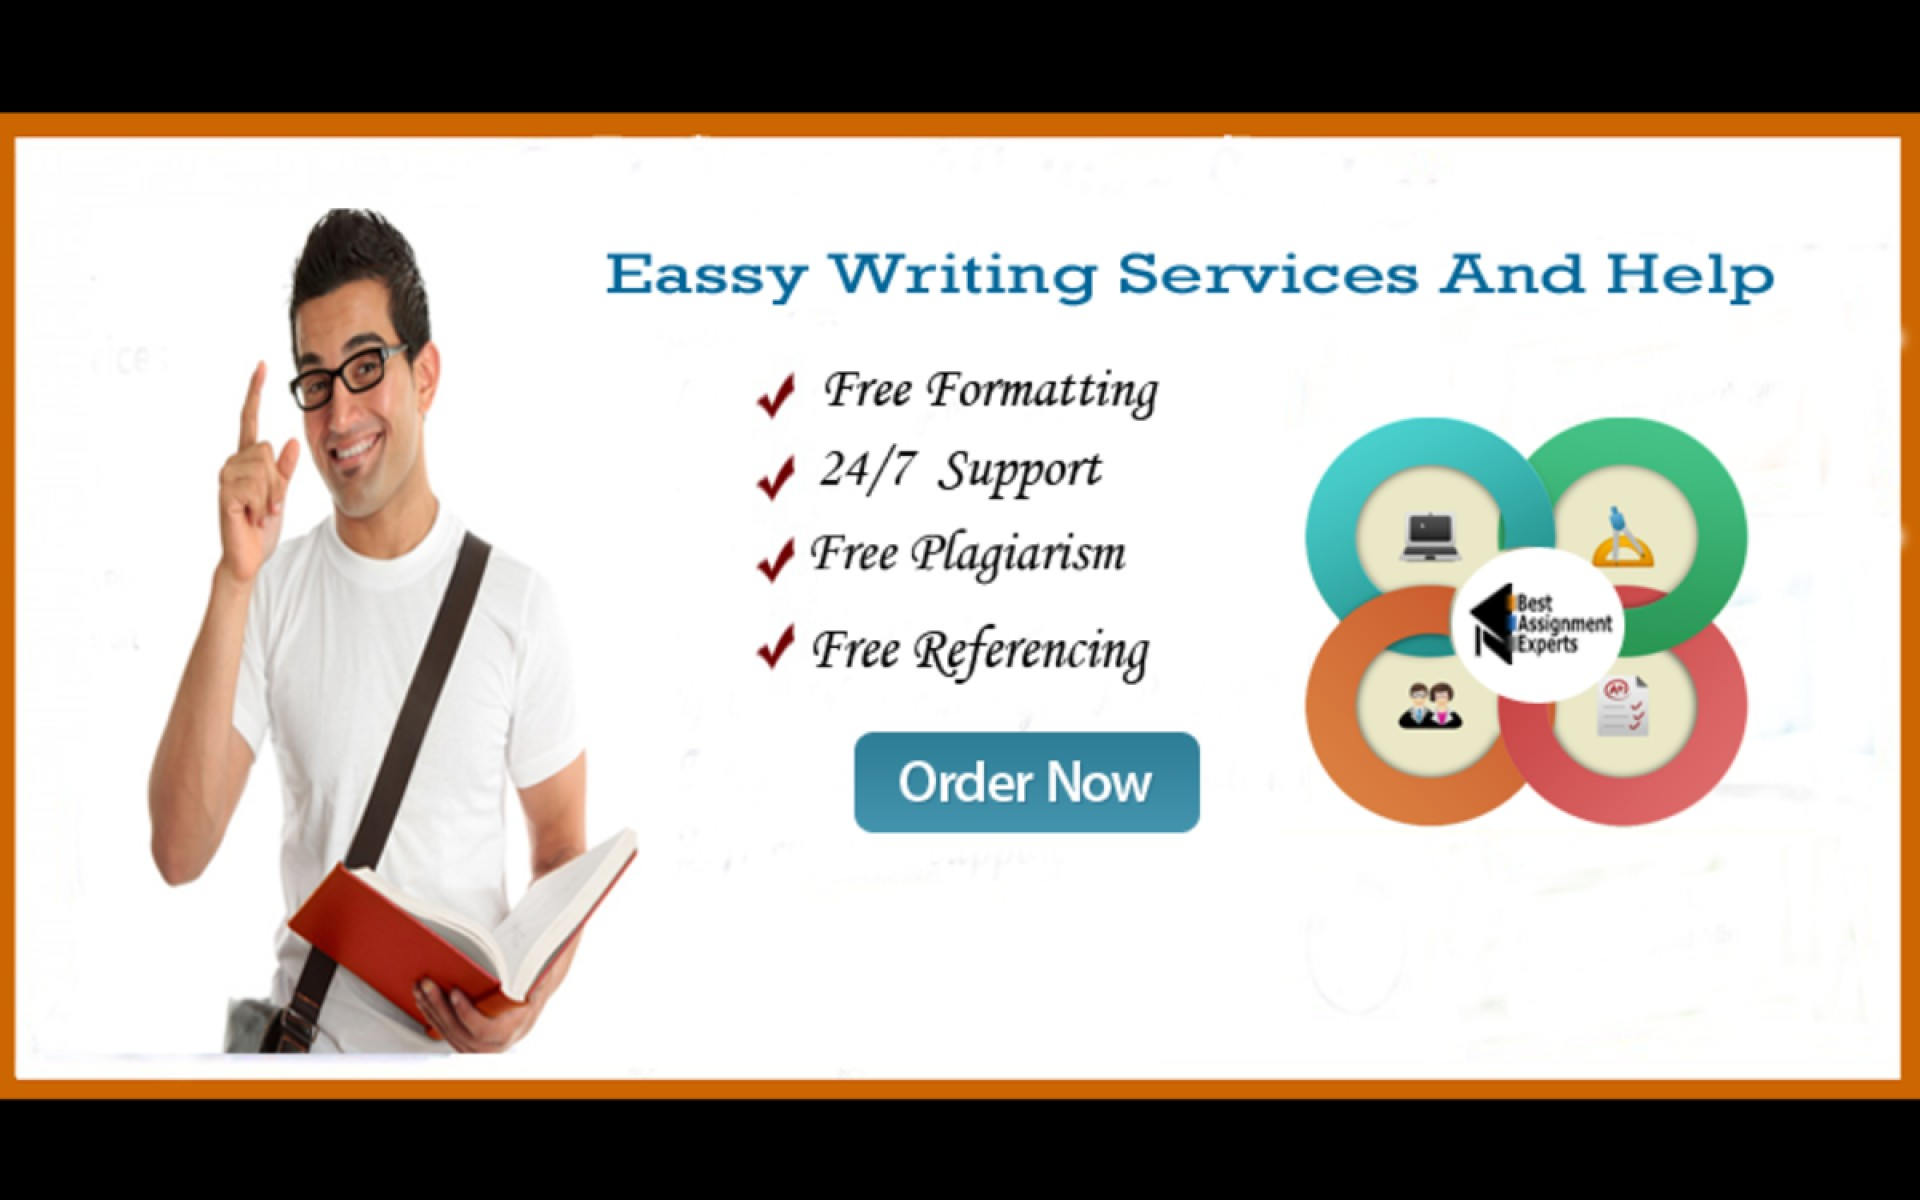 007 Cheap Essay Writing Service In Abu Dhabi Hoobly Classifieds Mxgpt Cheapest Unforgettable Singapore Usa Uk 1920